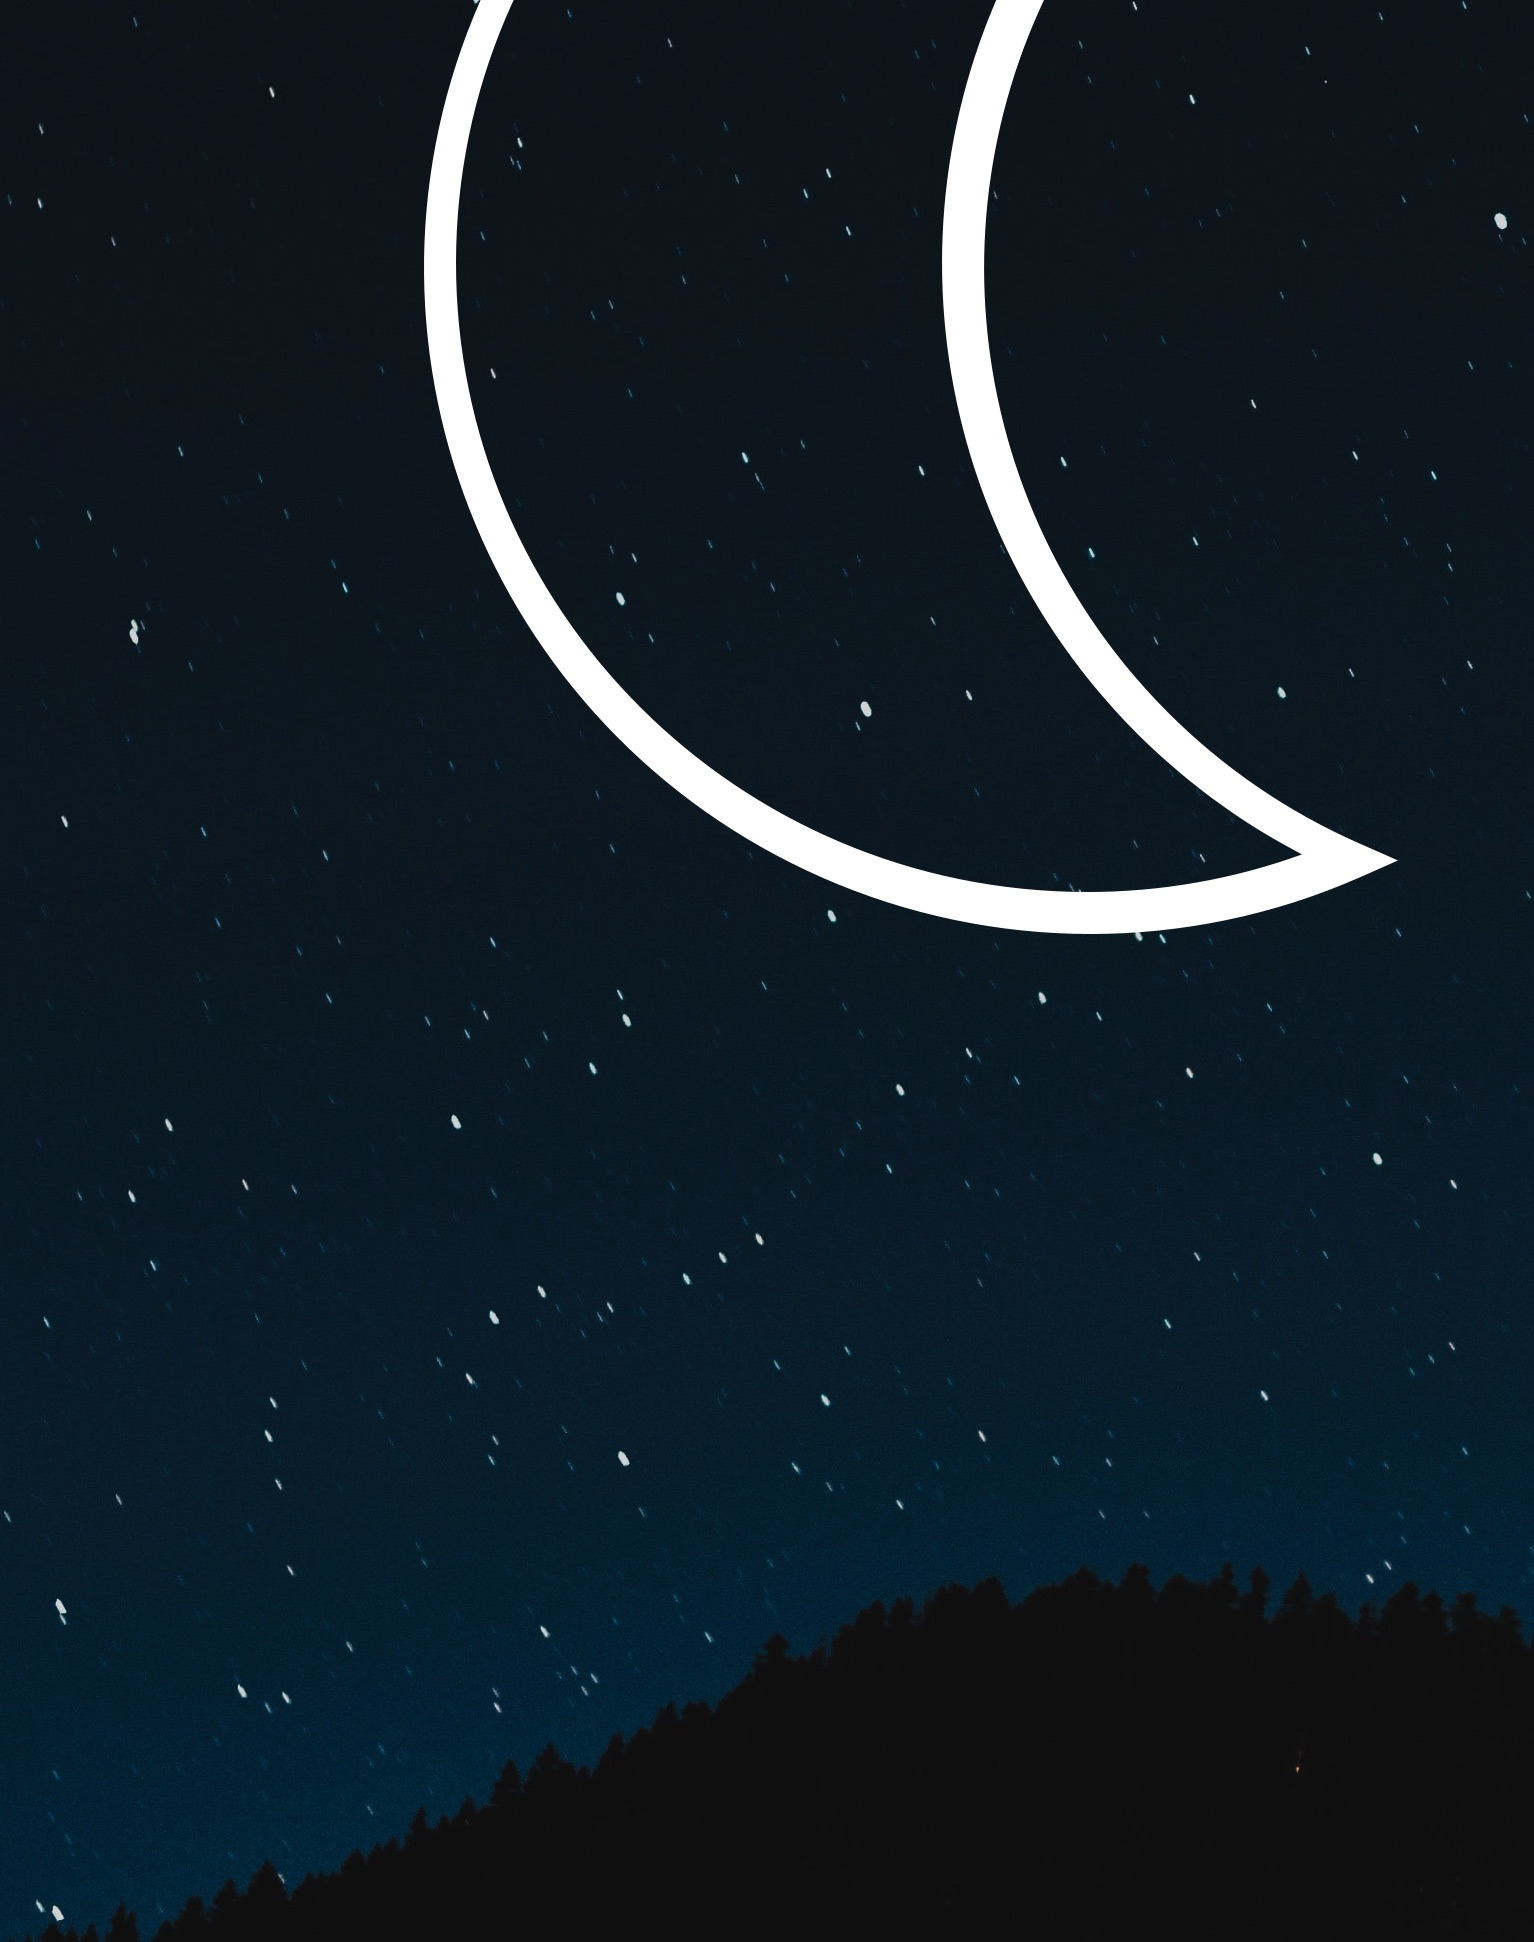 Star-speckled night sky, with the DAVIDsTEA's symbol for Sleep & Relaxation laid overtop.